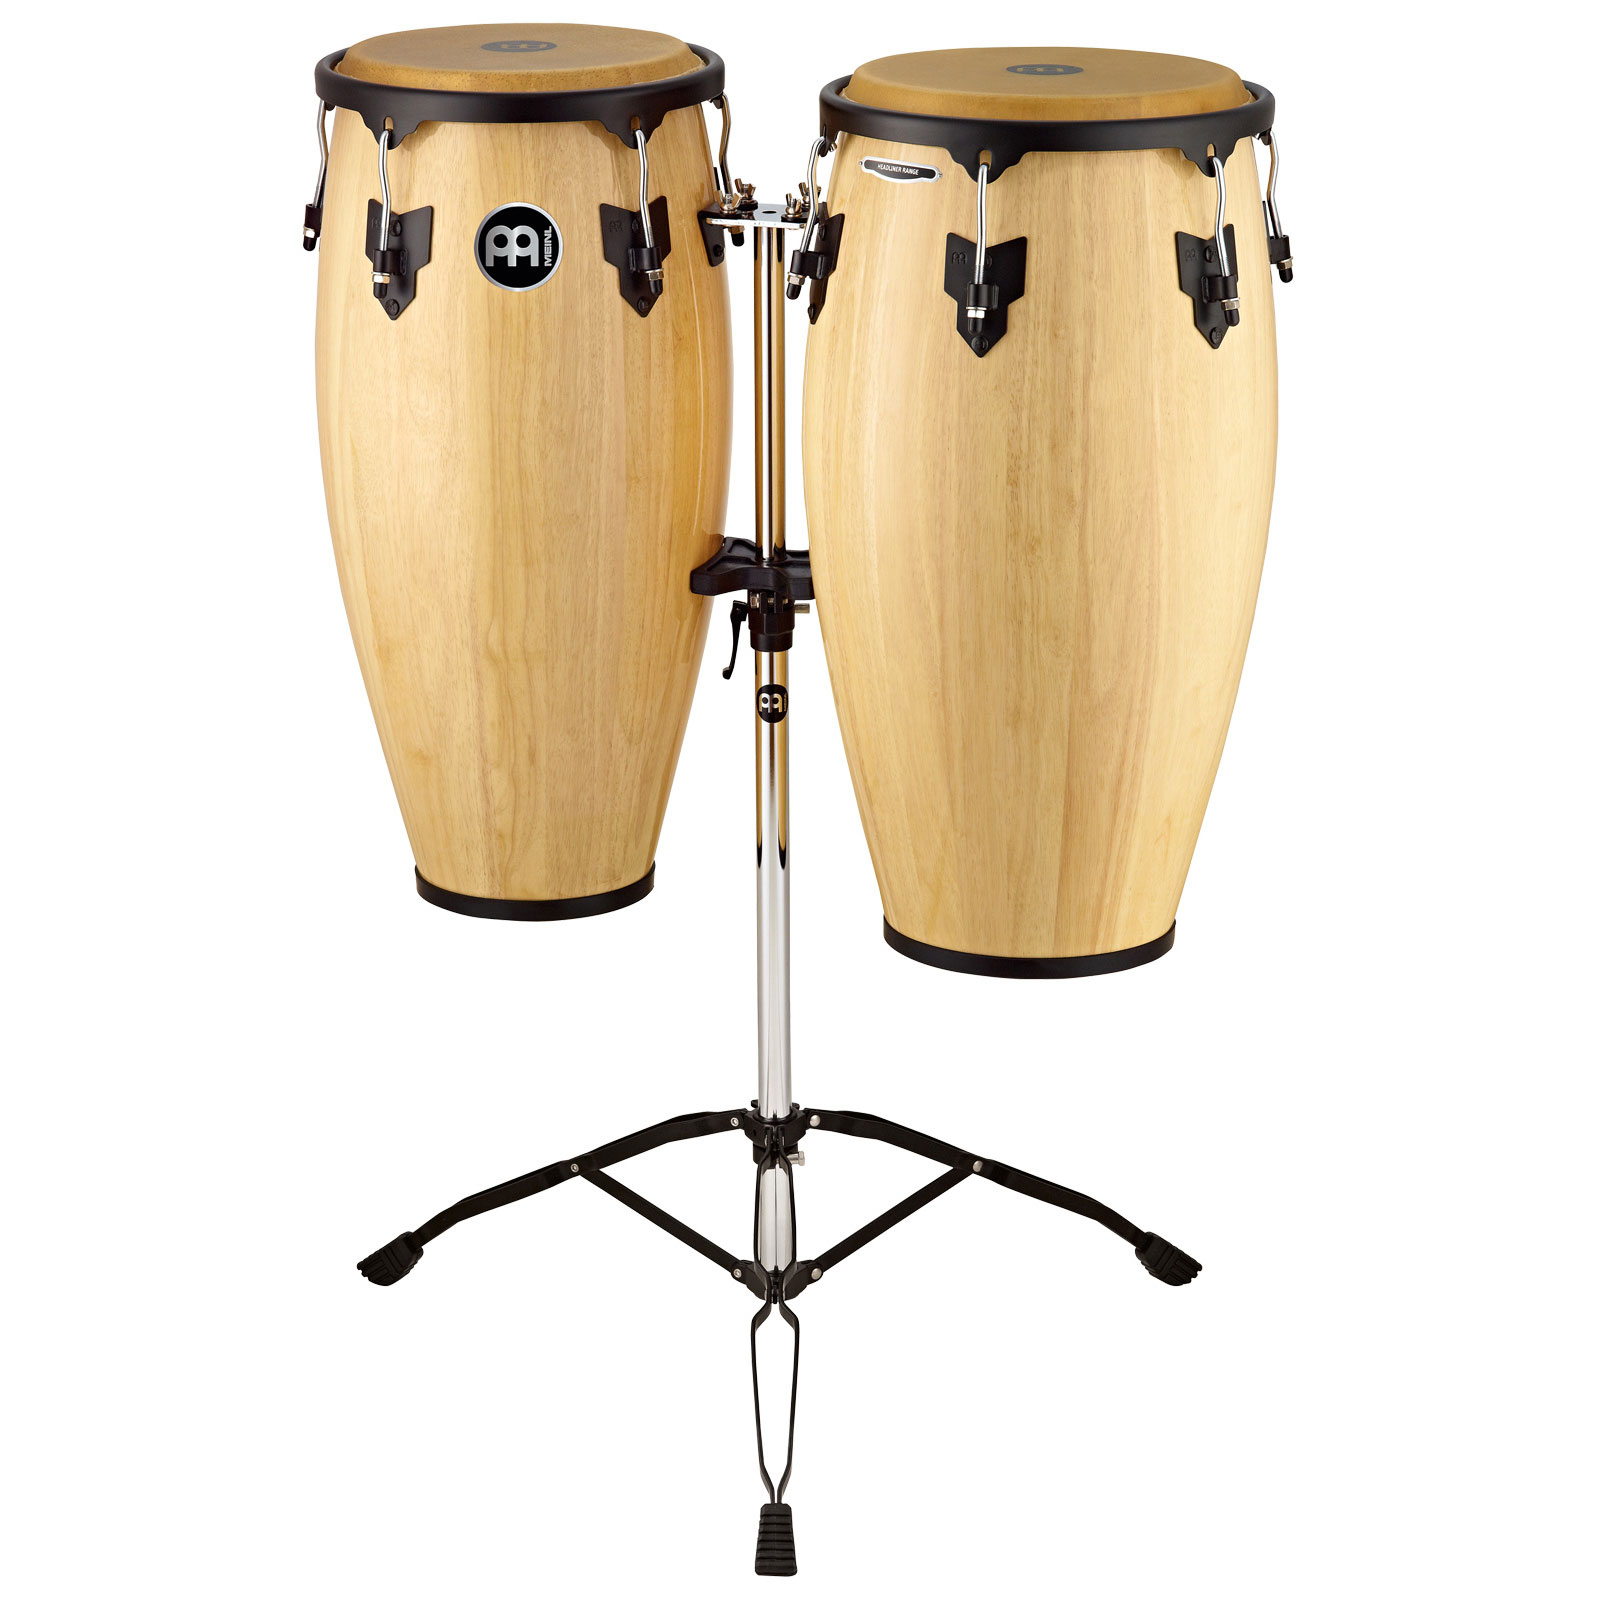 "Meinl 10"" & 11"" Headliner Series Conga Set in Natural with Stand"